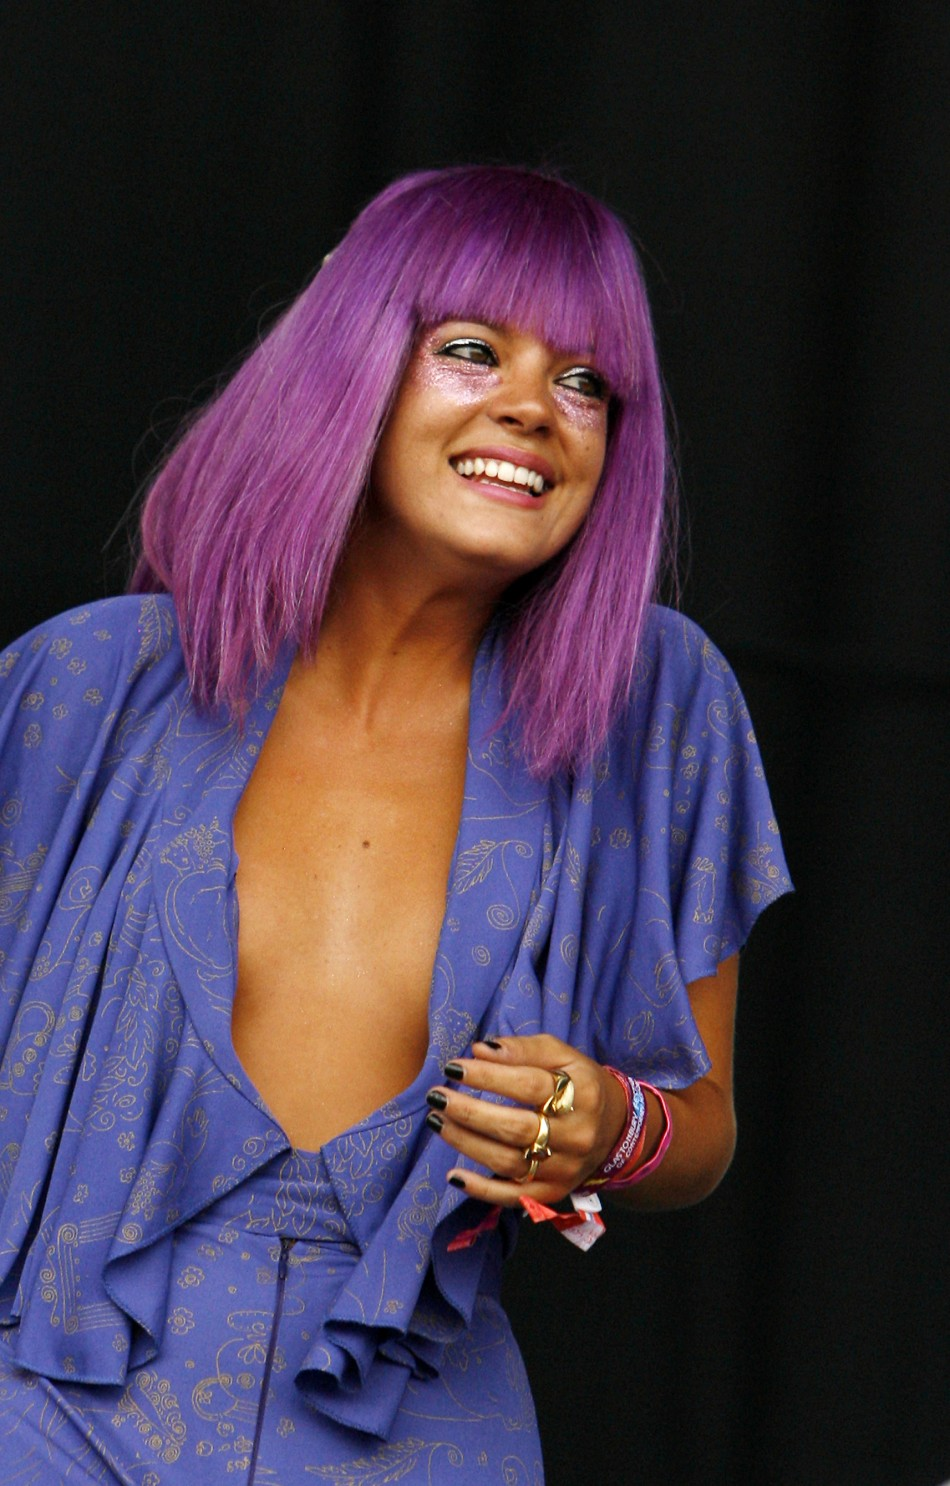 British singer Lily Allen performs at the Glastonbury Festival 2009 in south west England